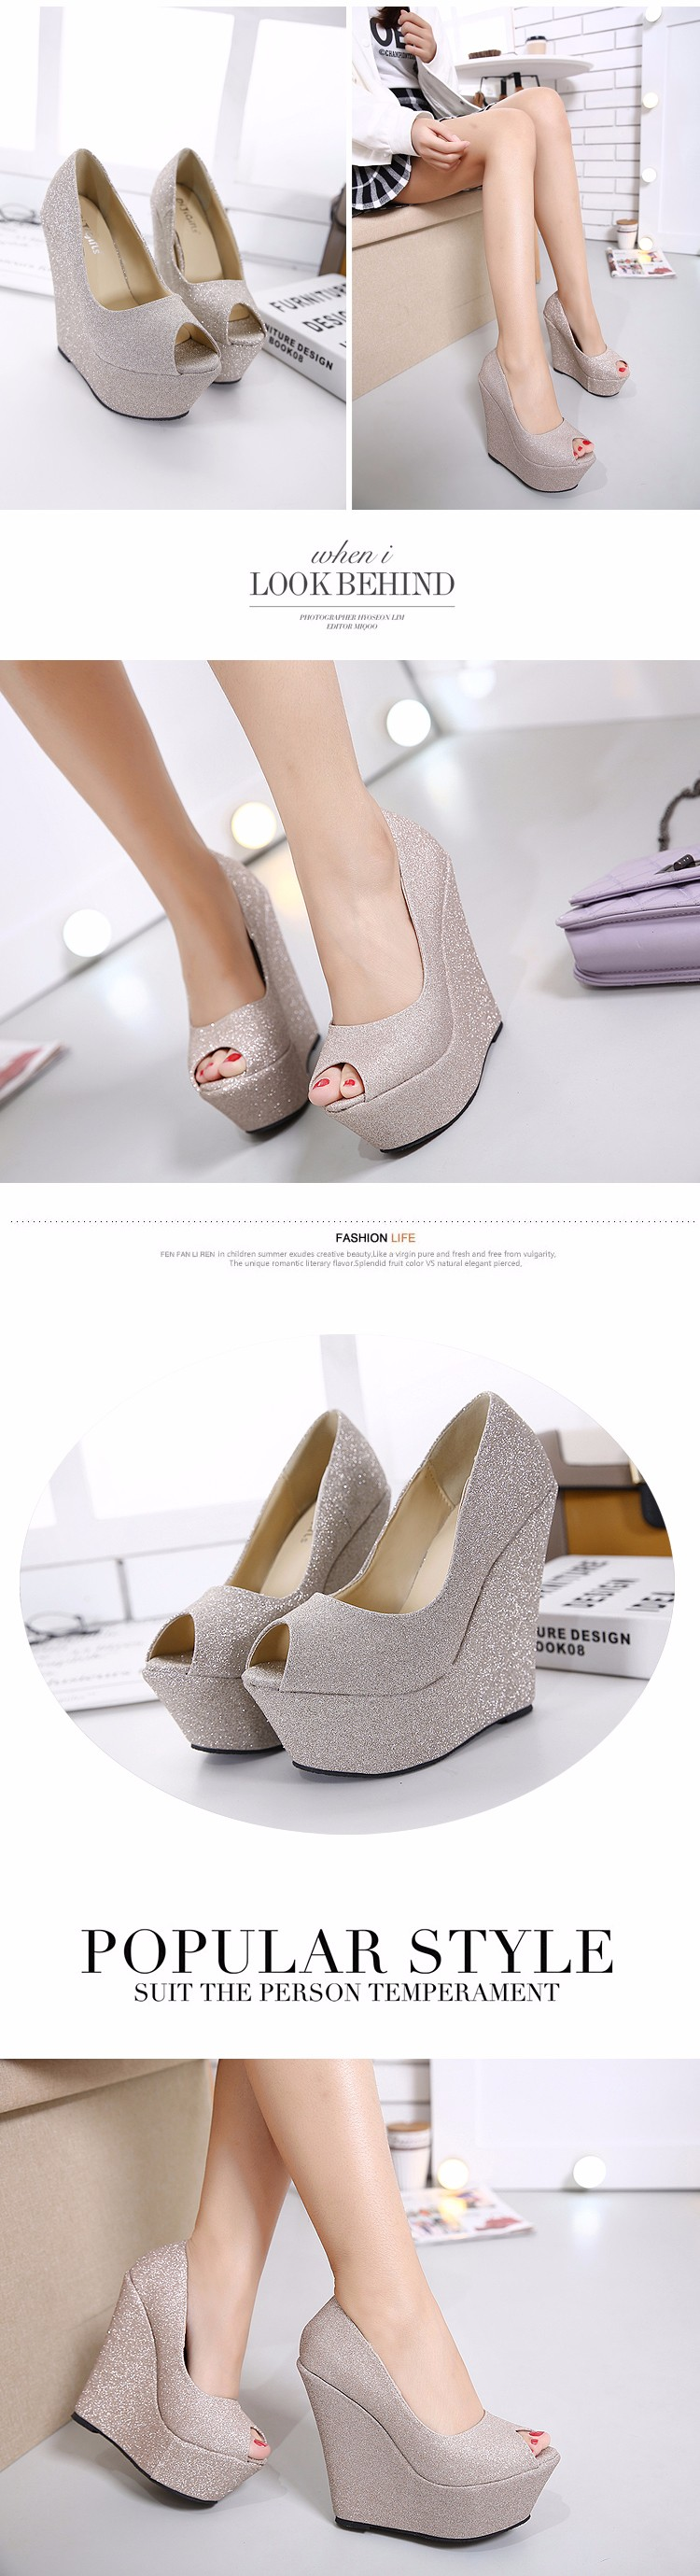 glitter shoes Platform shoes High Heels gold silver wedding Shoes peep toe High Heels Pumps Platform shoes Wedges pumps D925 3